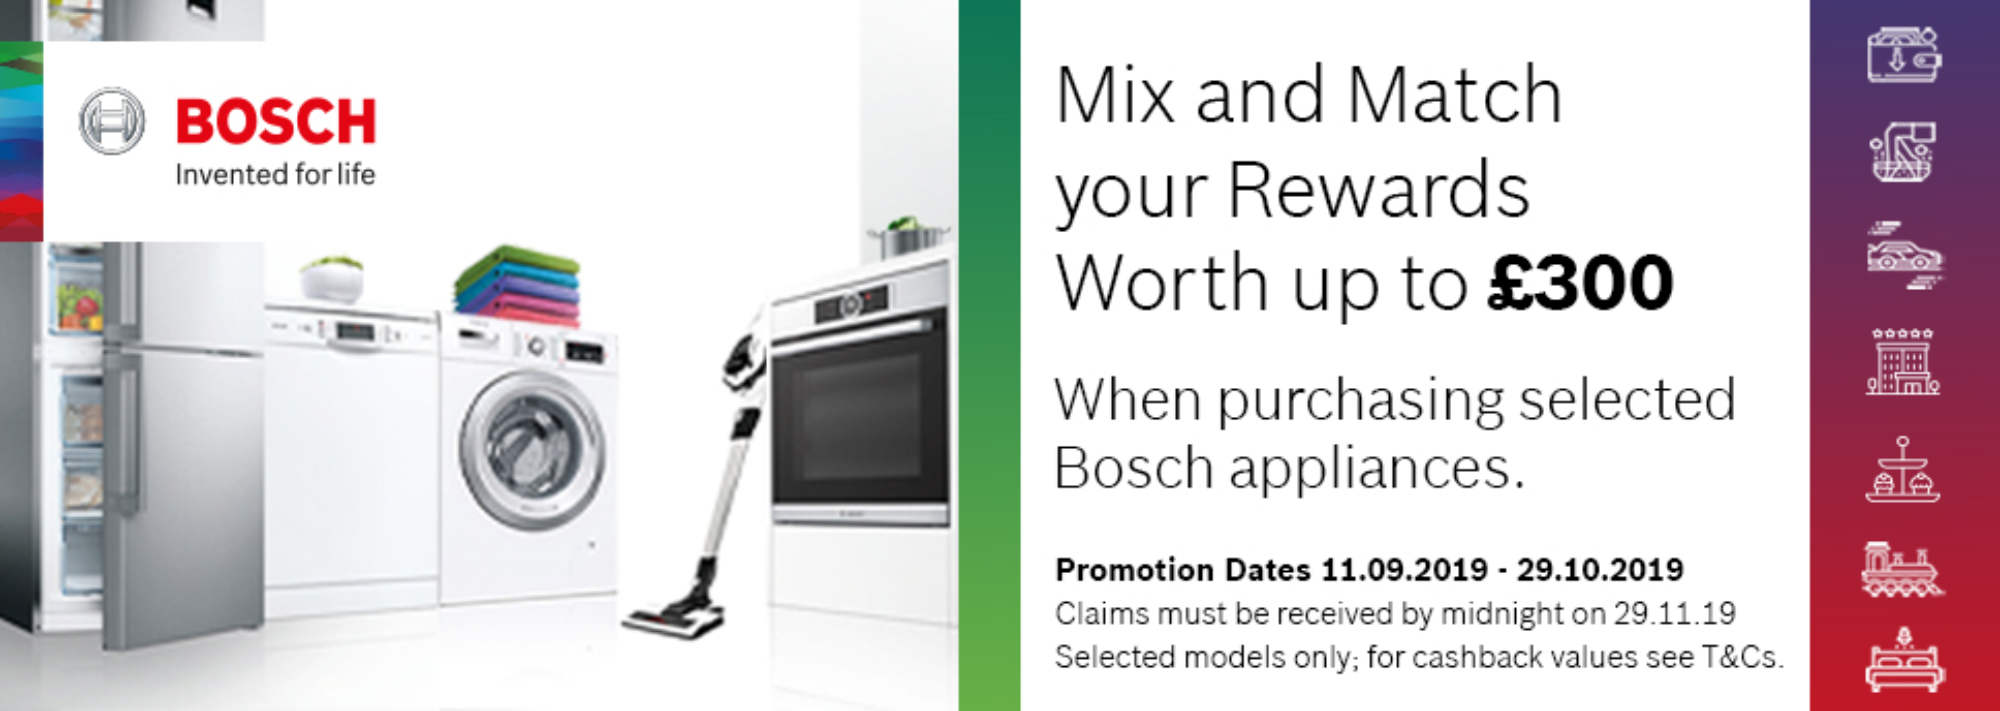 BOSCH Mix&Match offer